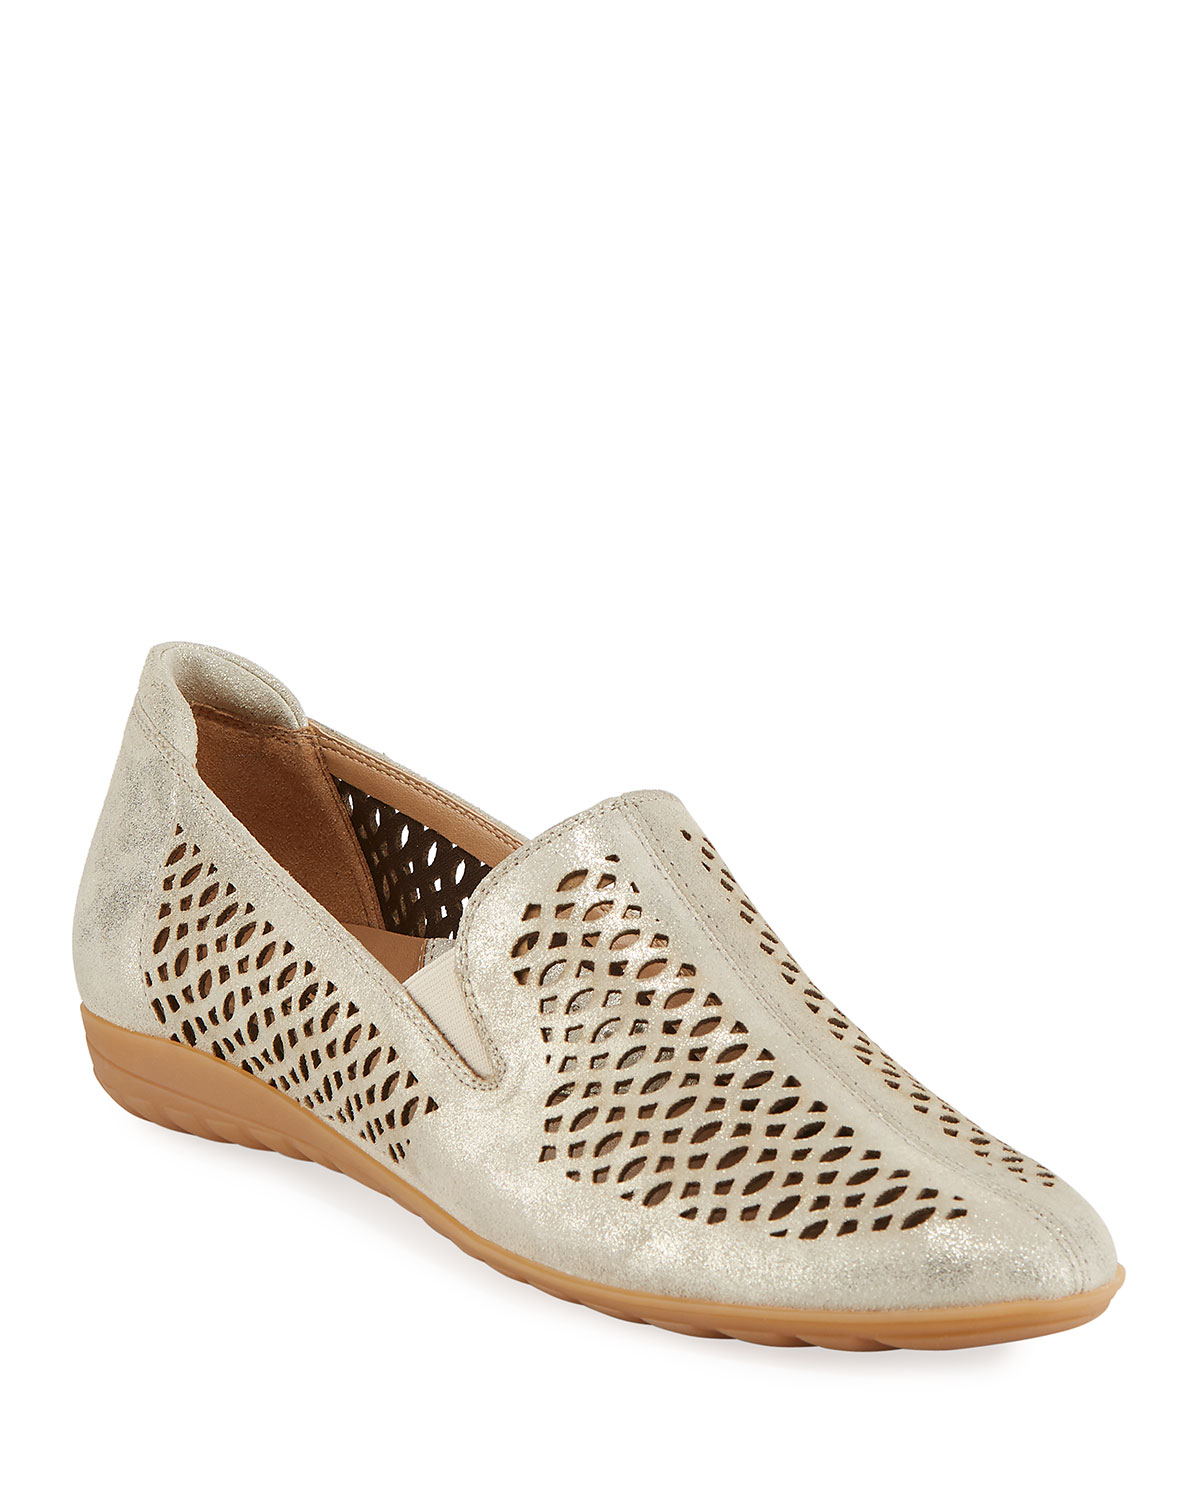 Sesto Meucci Byrna Metallic Perforated Leather Comfort Loafer